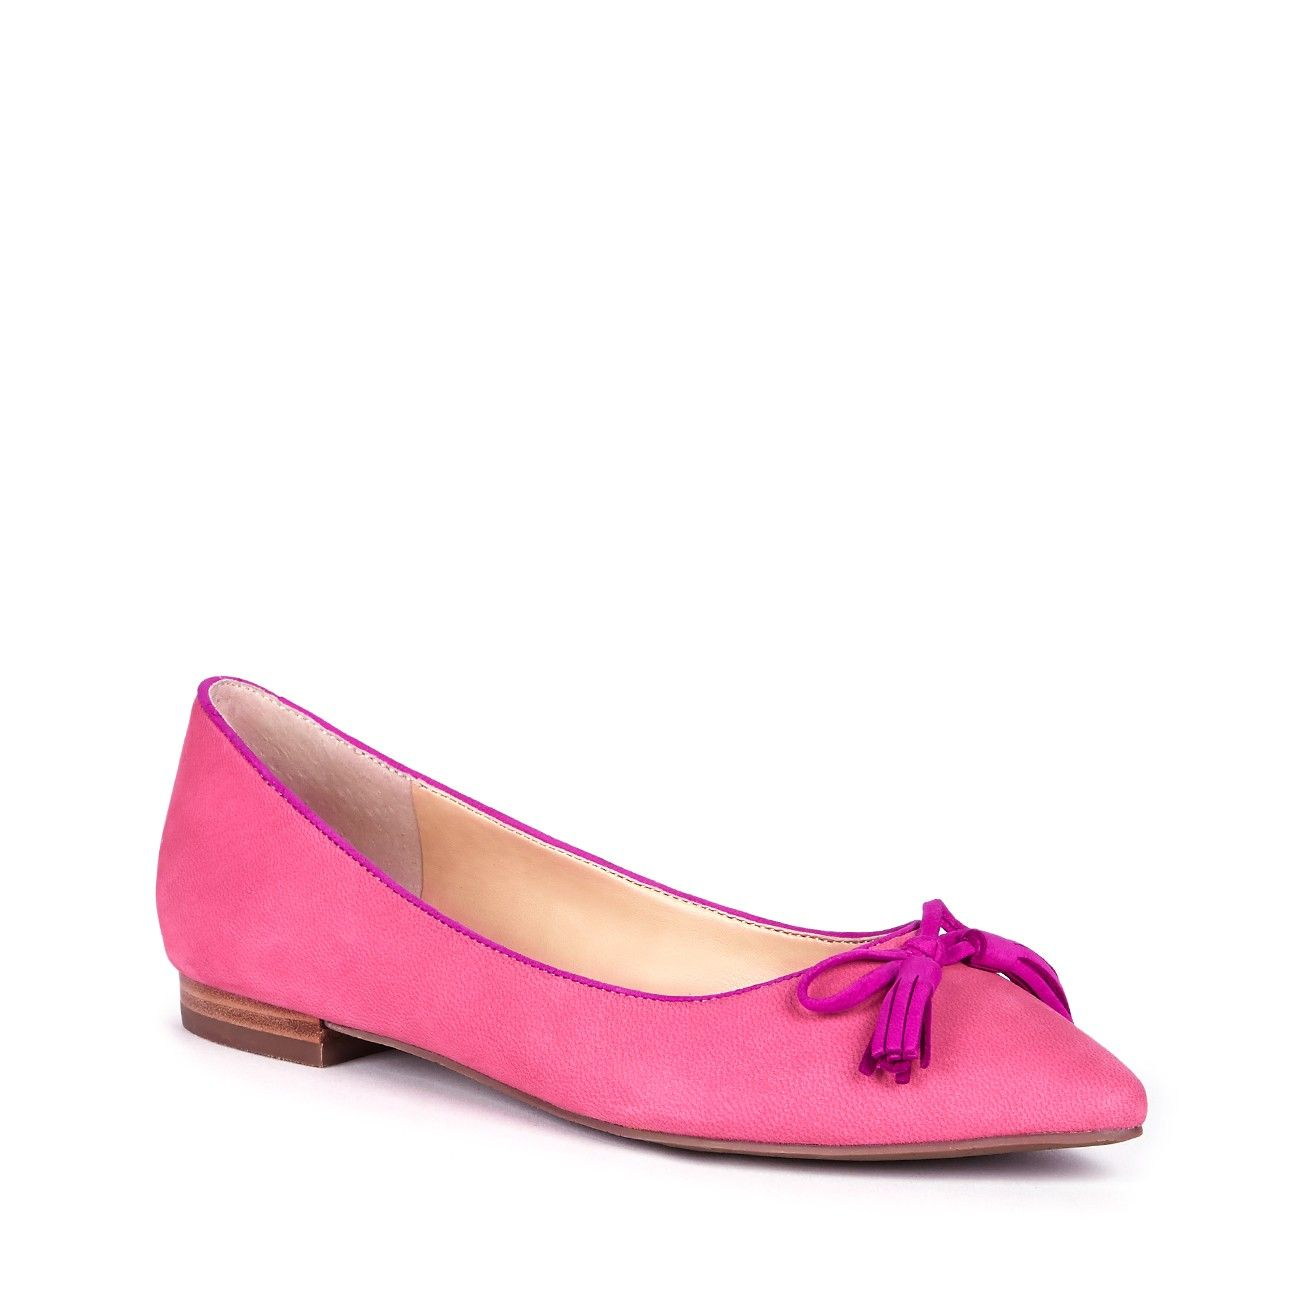 c6ca30c6759 Sole Society - Women s Shoes at Surprisingly Affordable Prices ...